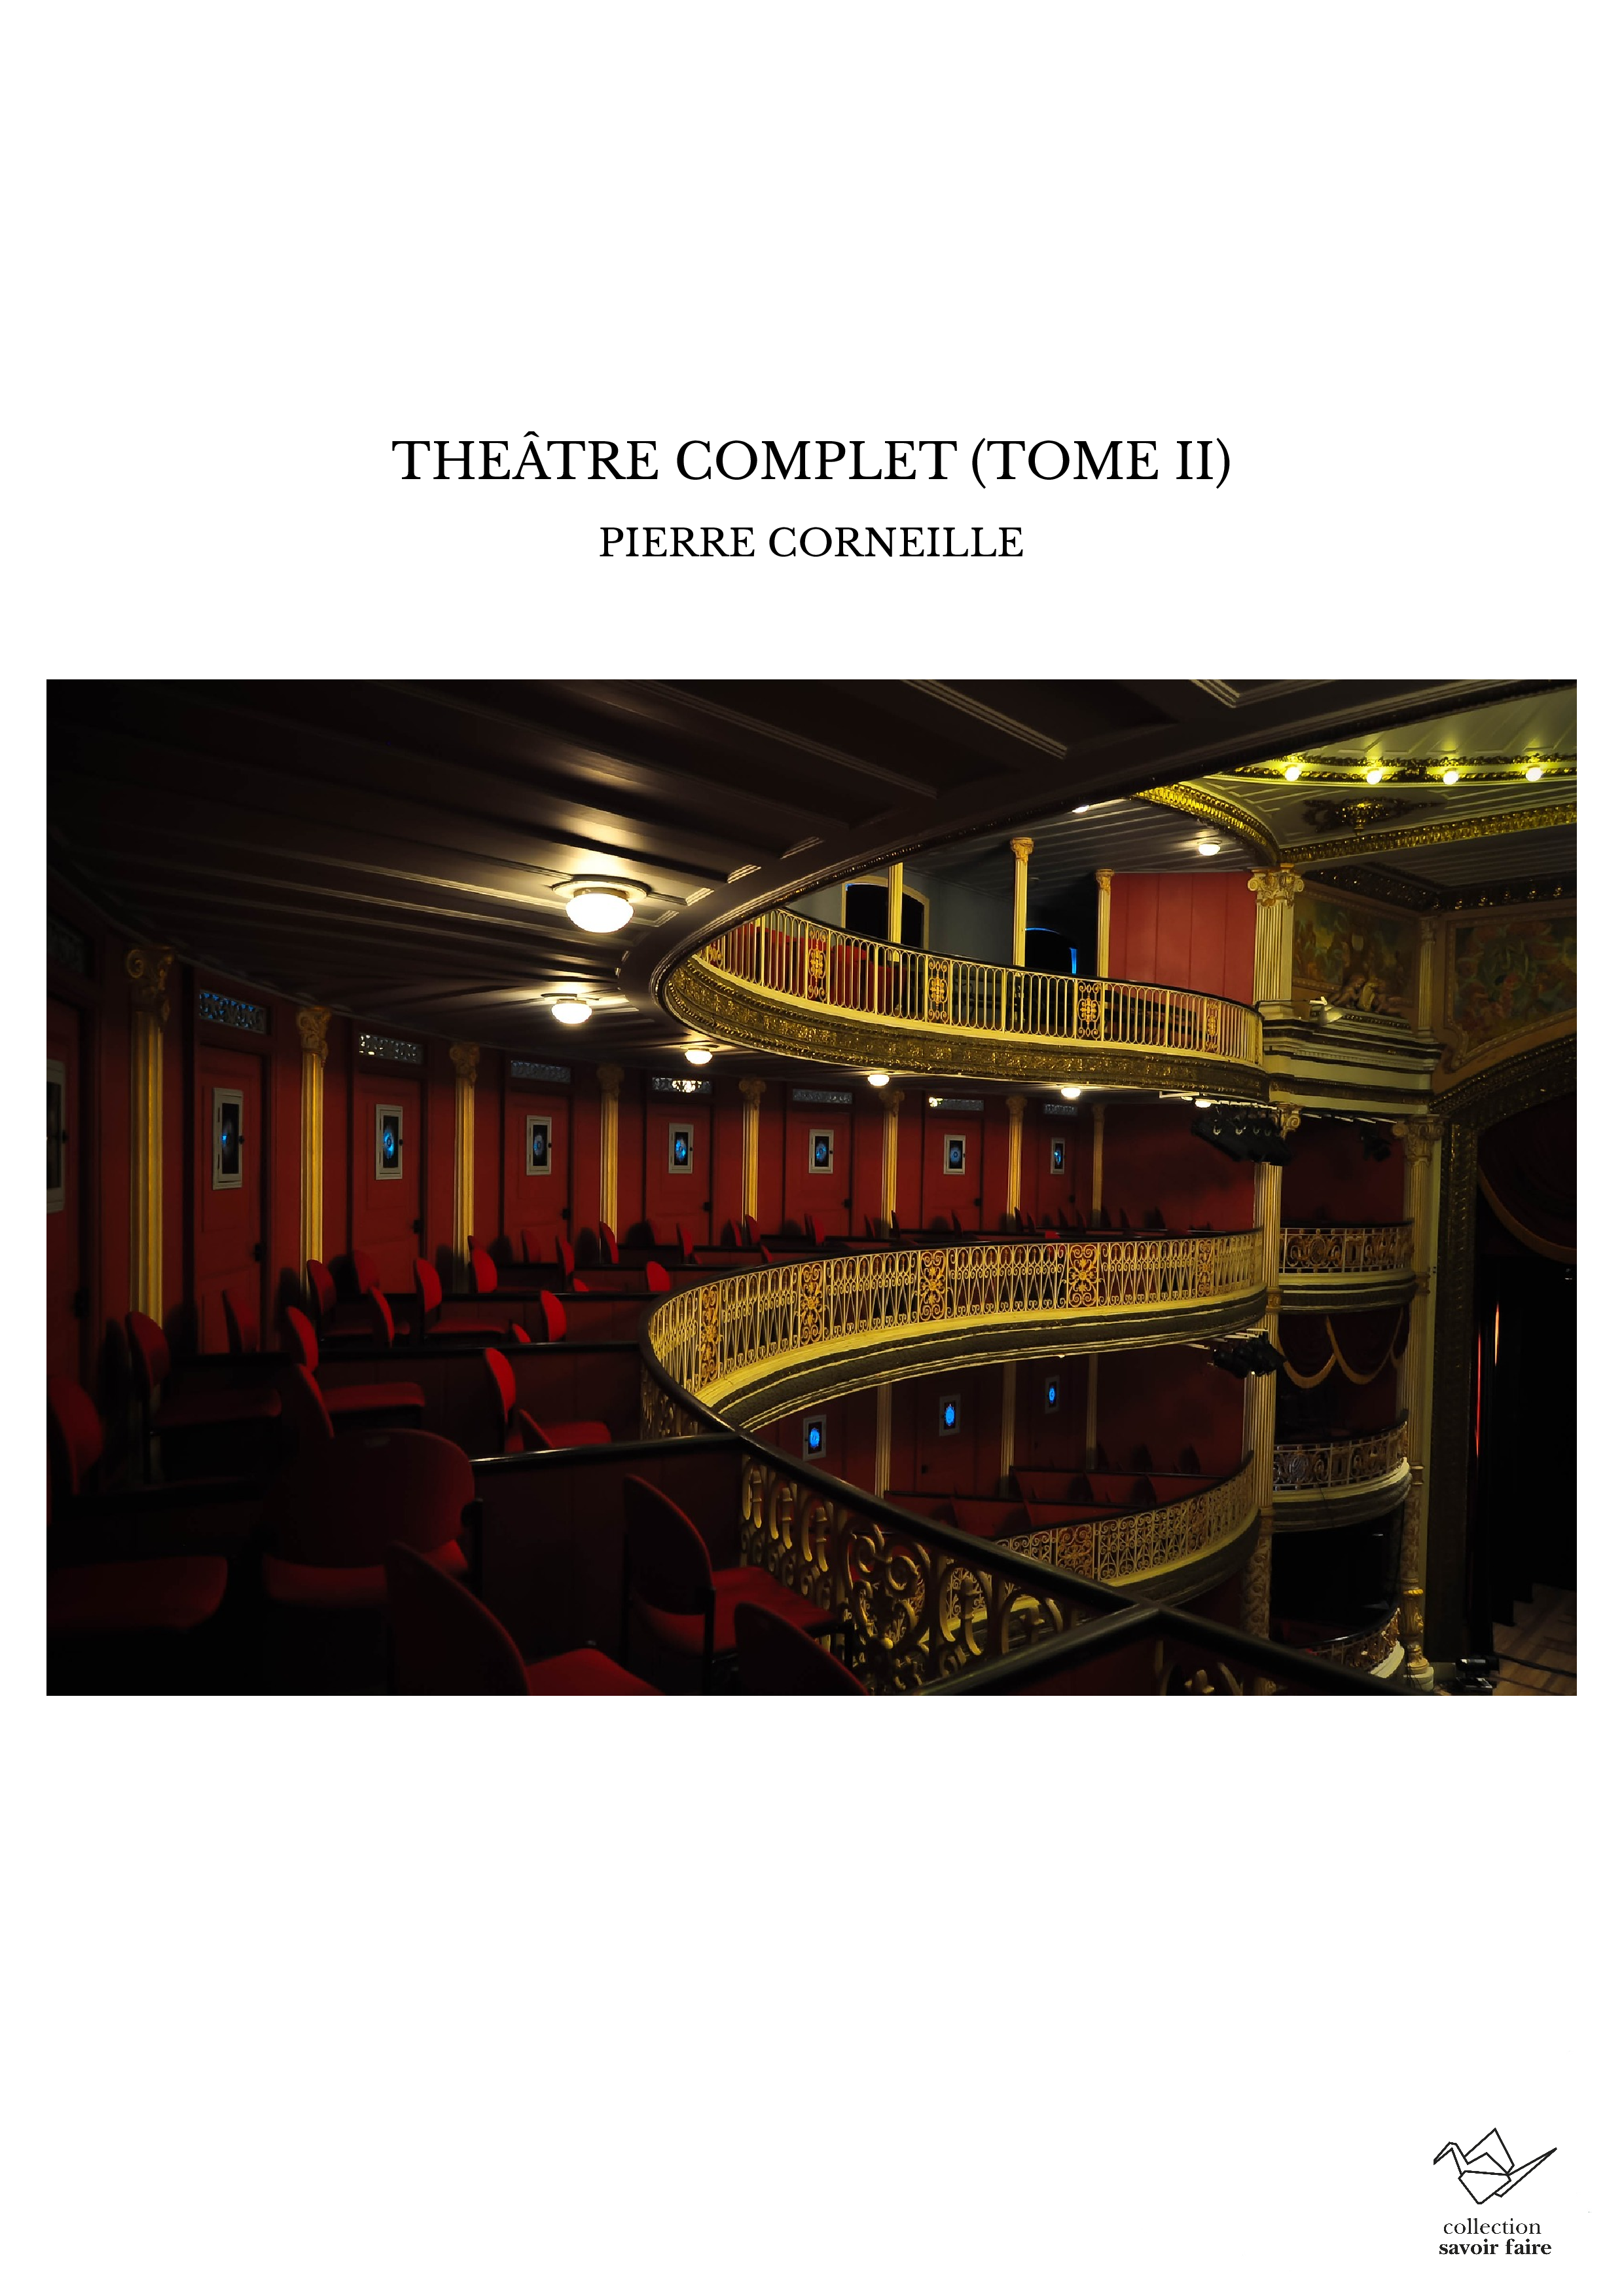 THEÂTRE COMPLET (TOME II)